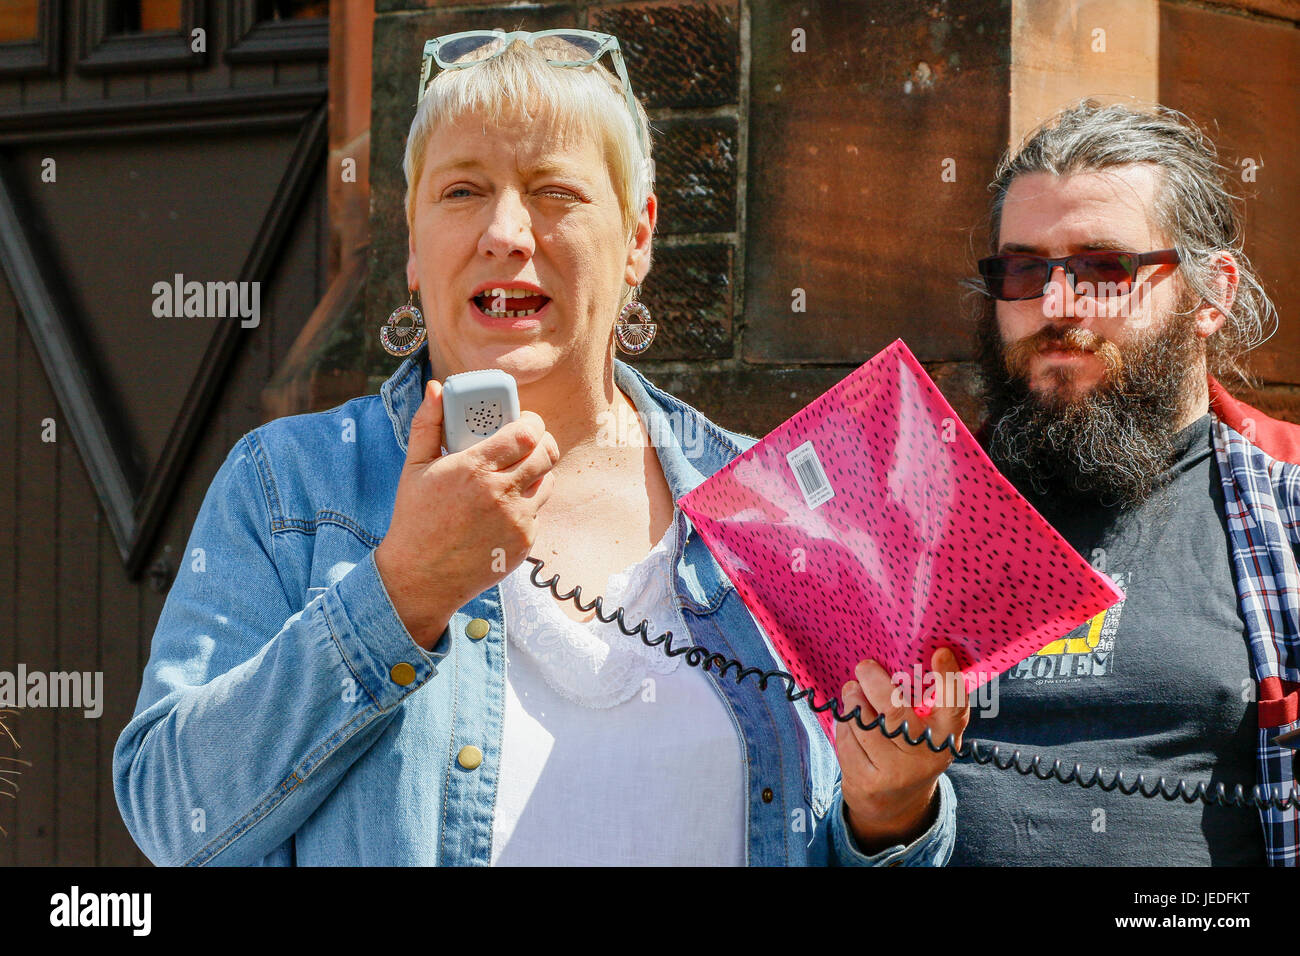 Glasgow, UK. 24th June, 2017. LIZ CROSBIE and FRANCES STOJILKOVIC from Govanhill Community Campaign lead a protest Stock Photo